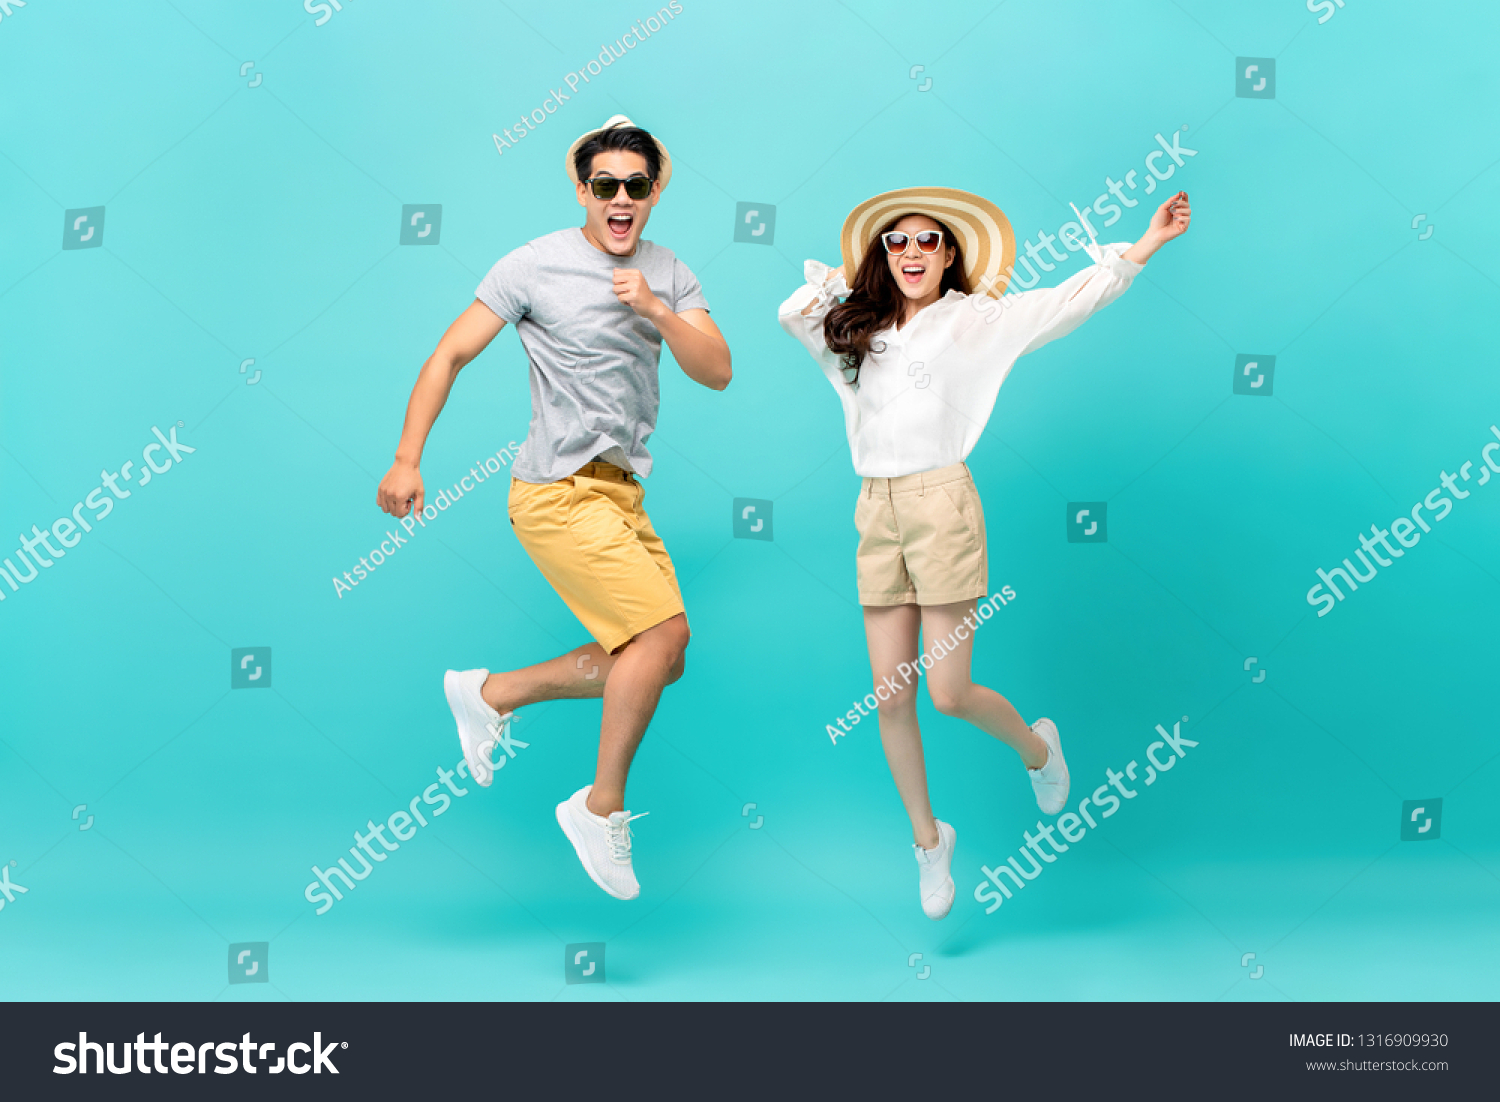 Playful energetic Asian couple in summer beach casual clothes jumping isolated on light blue background studio shot #1316909930